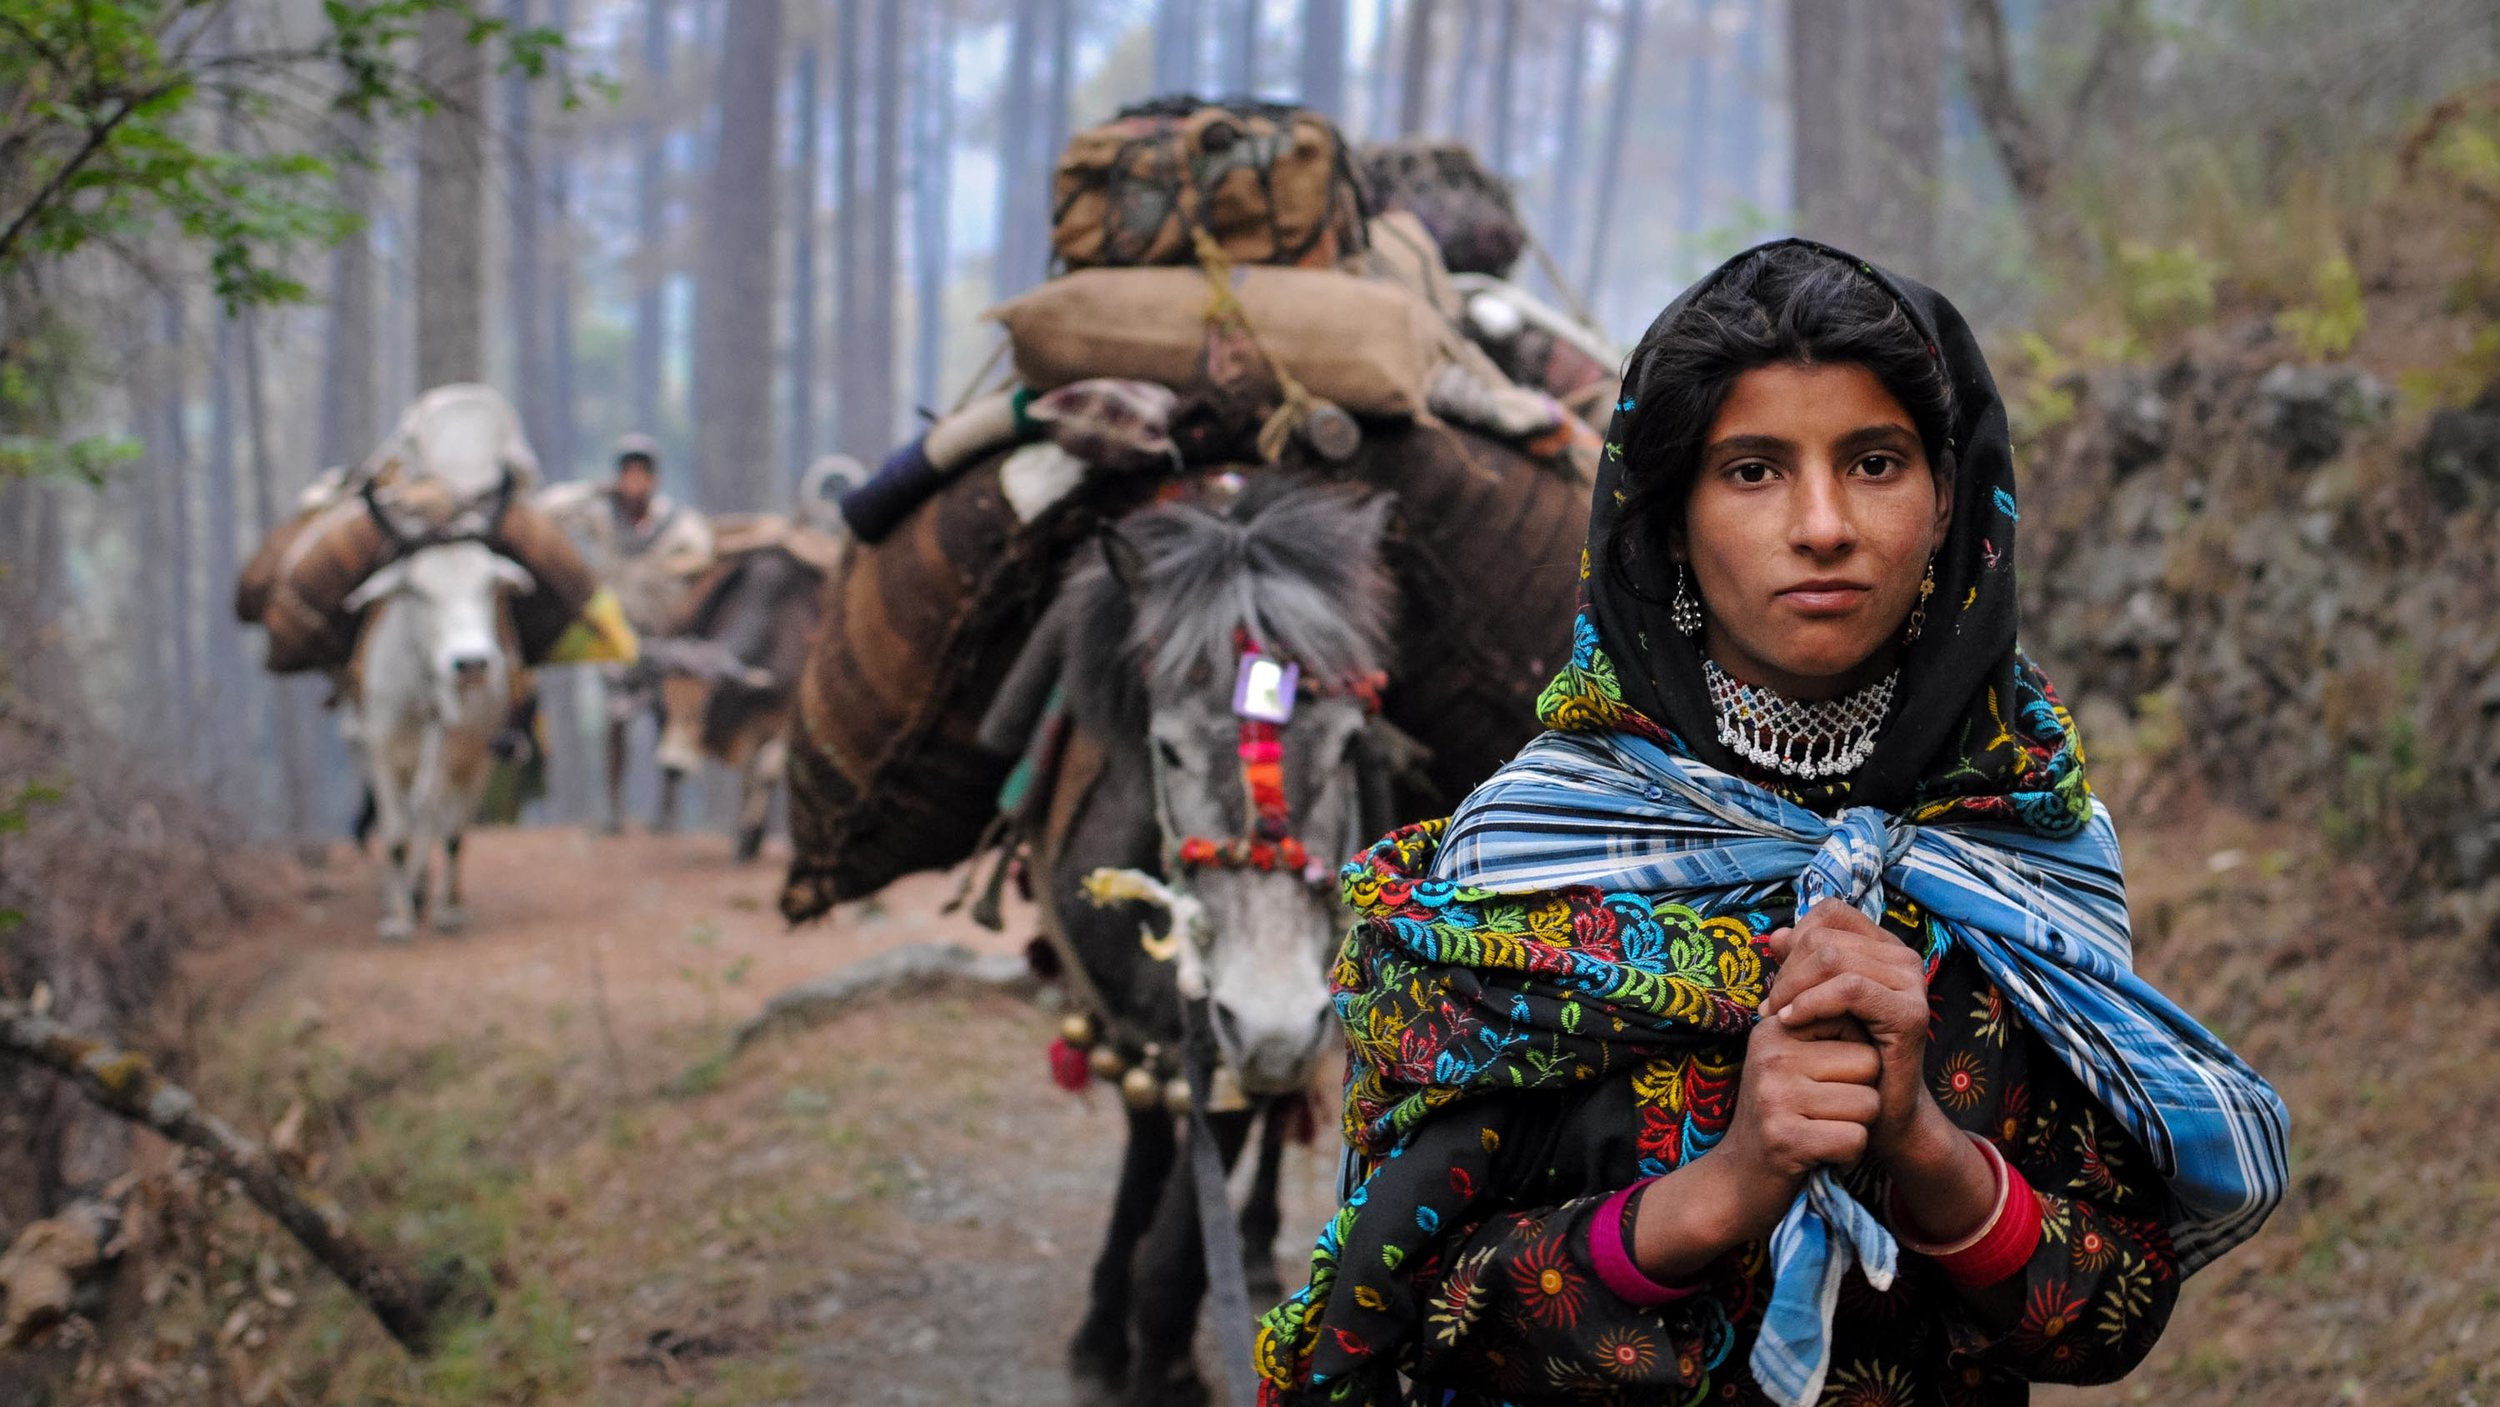 Every year, the Van Gujjars migrate from the lowlands of India into the Himalayas with their herds of buffaloes. (Photo by Michael Benanav)